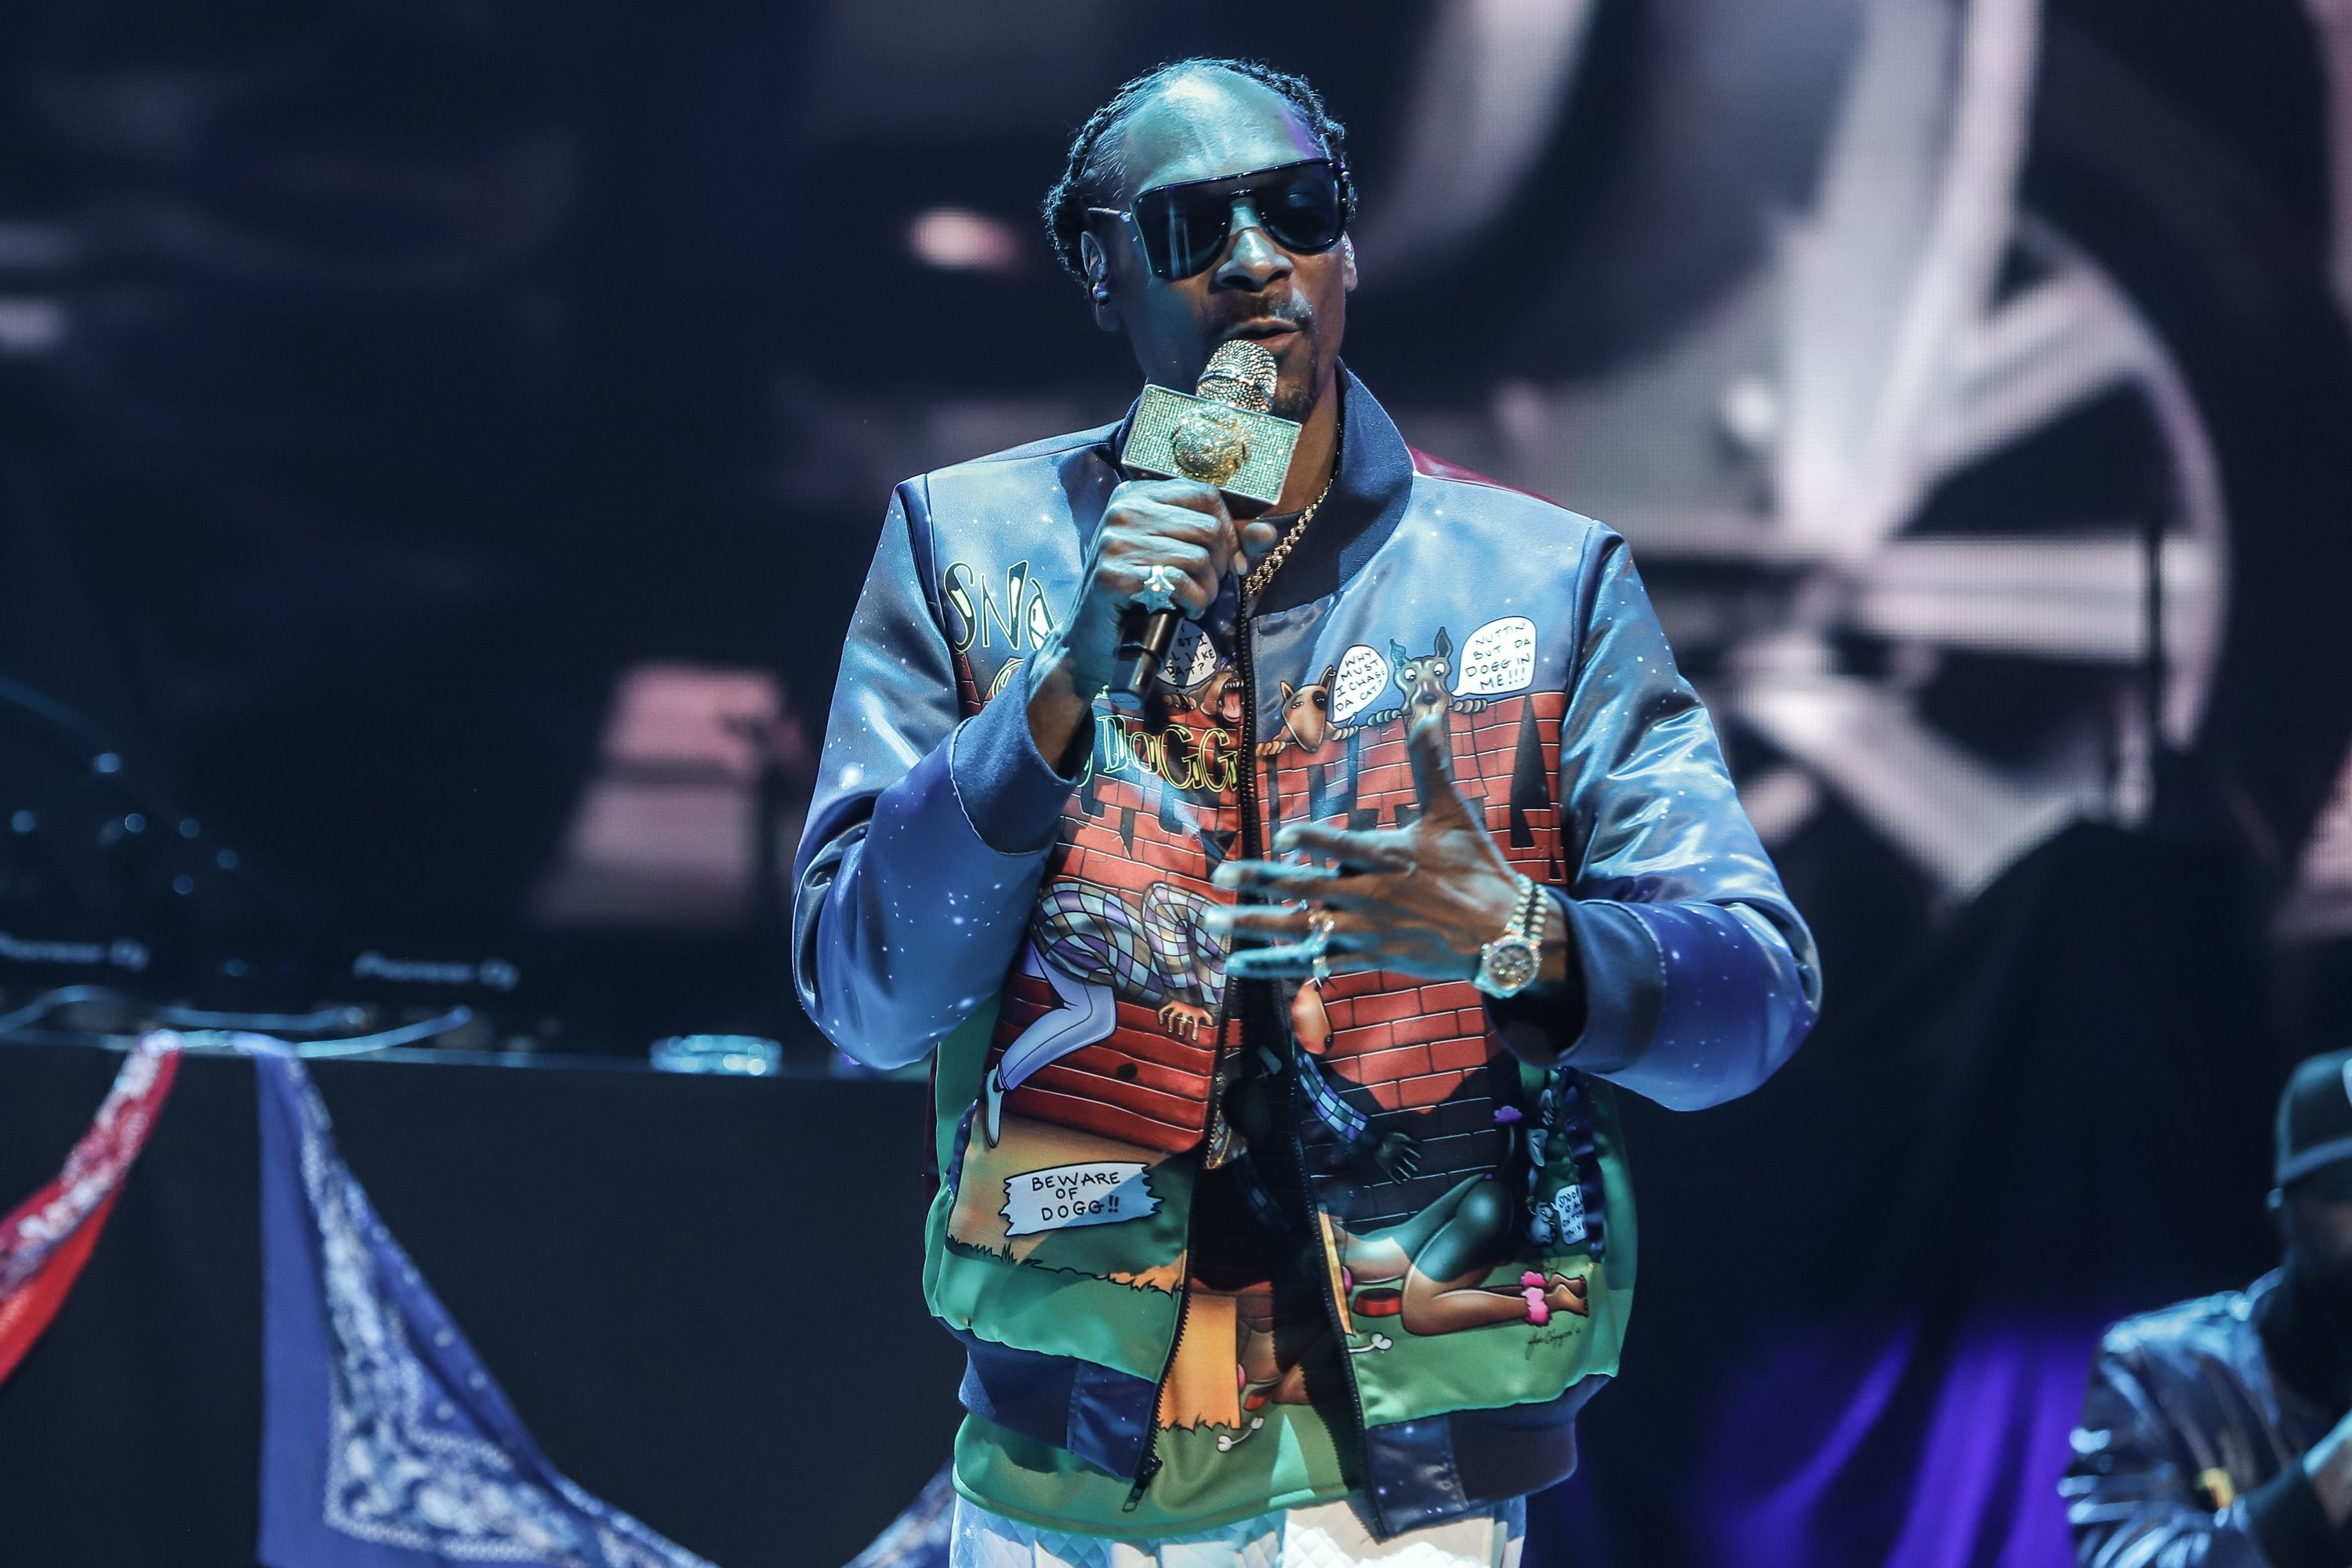 Snoop Dogg performs at the Bud Light Super Bowl Music Fest on January 31, 2020   Photo: Getty Images